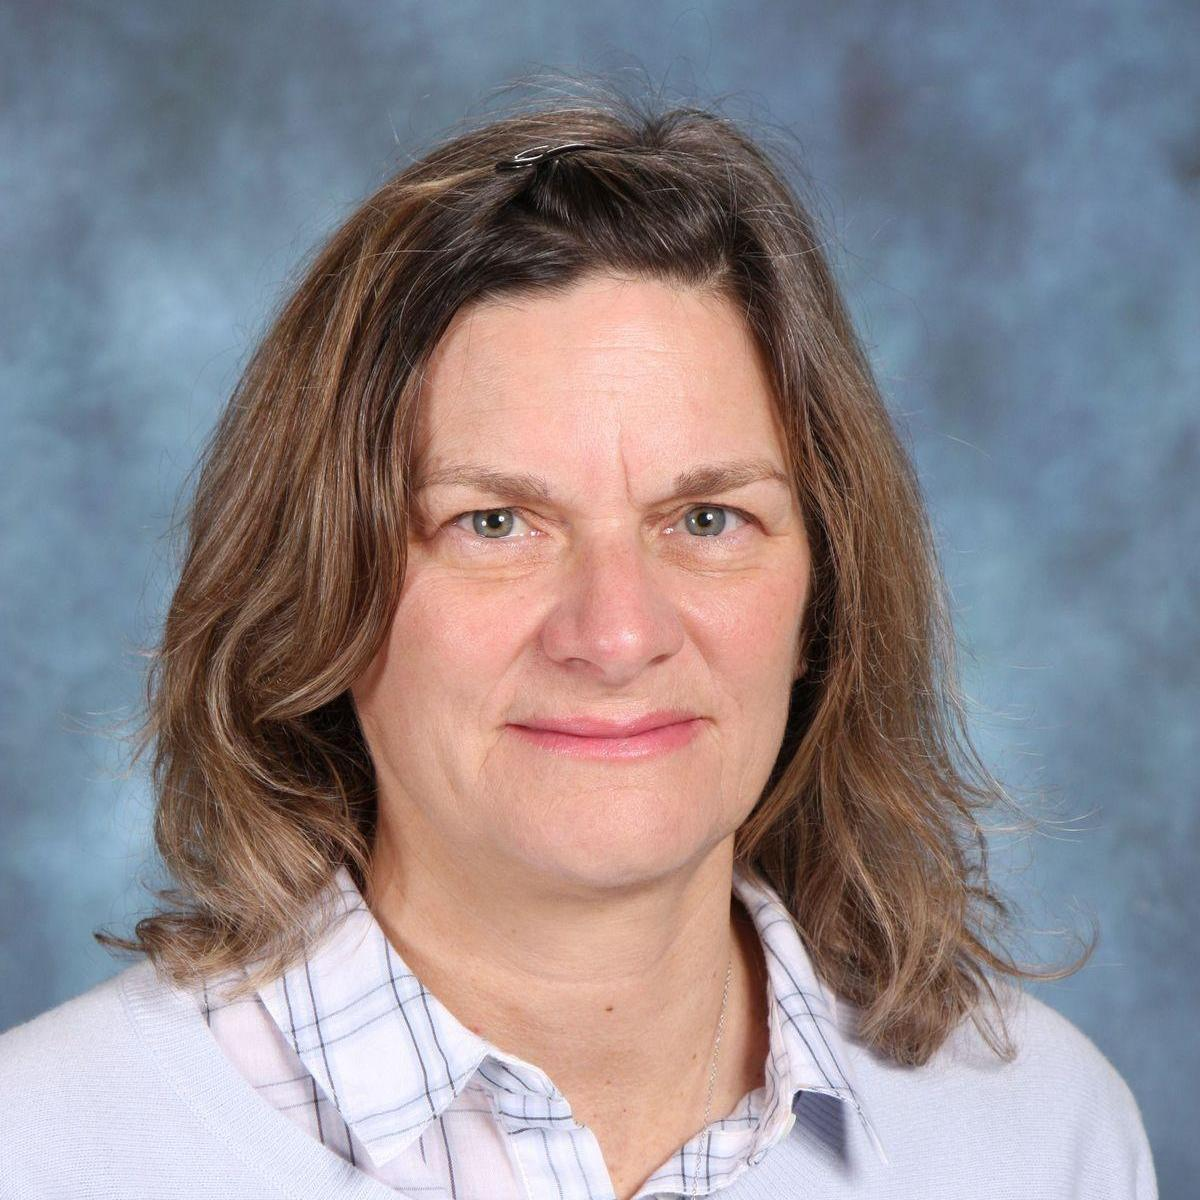 Mrs. Kelly Cosenke's Profile Photo